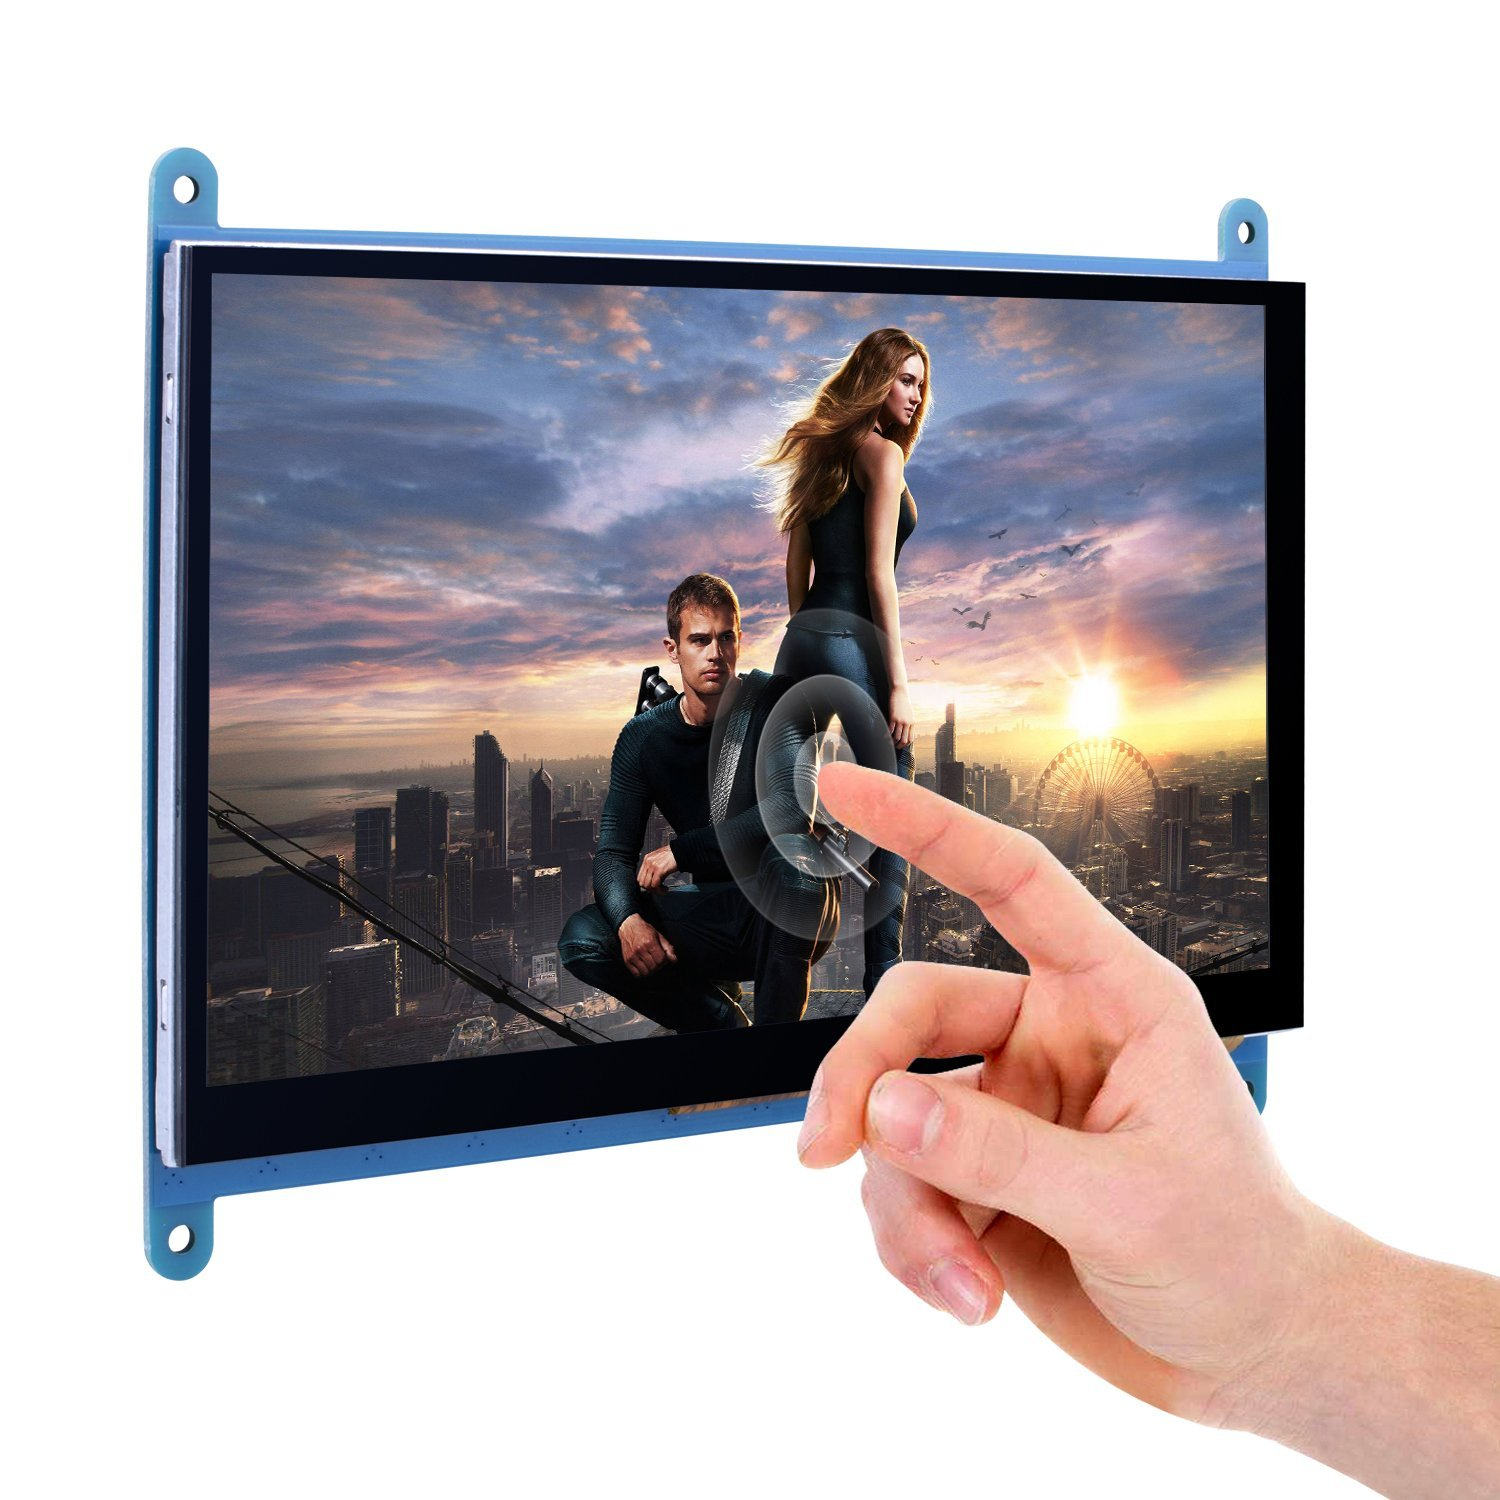 BLEL Hot 7 Inch Capacitive Touch Screen TFT LCD Display HDMI Module 800x480 for Raspberry Pi 3 2 Model B and RPi 1 B+ A BB Bla 4 inch touch screen tft lcd designed for raspberry pi 2 rpi model b b